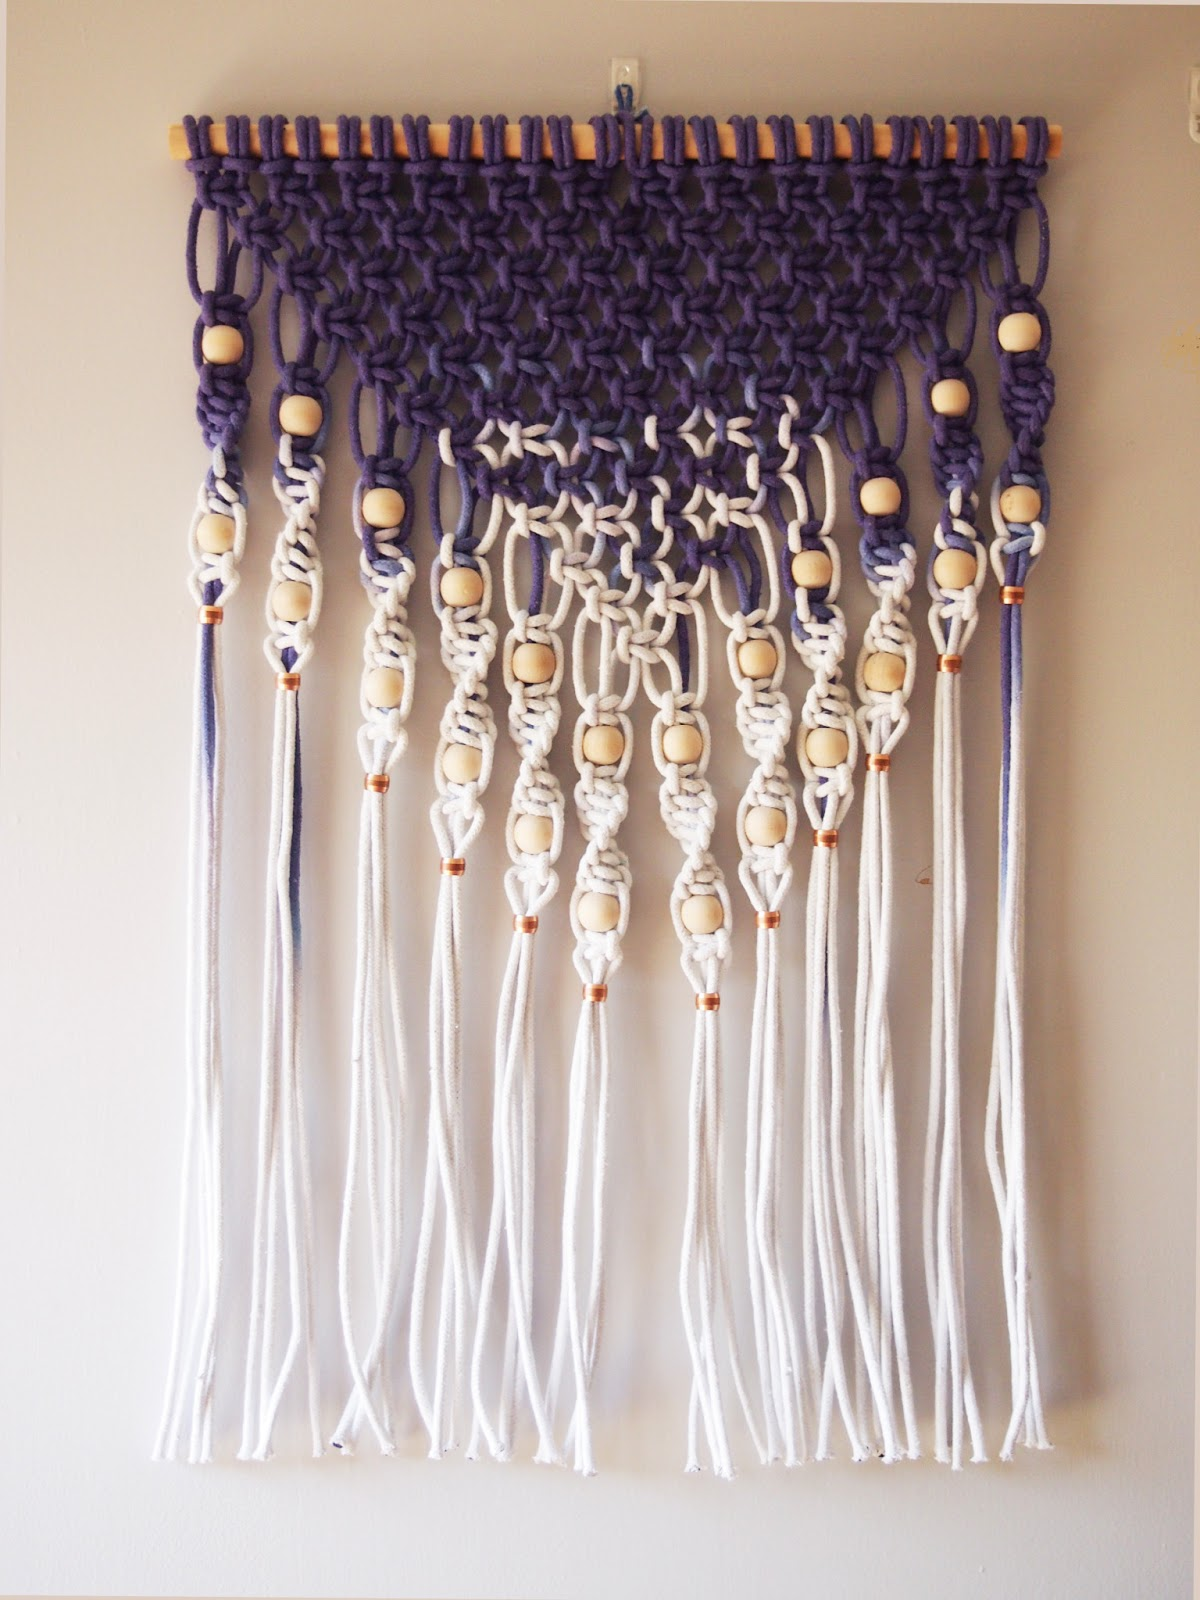 1000 images about macrame patterns on pinterest free on macrame wall hanging id=97373